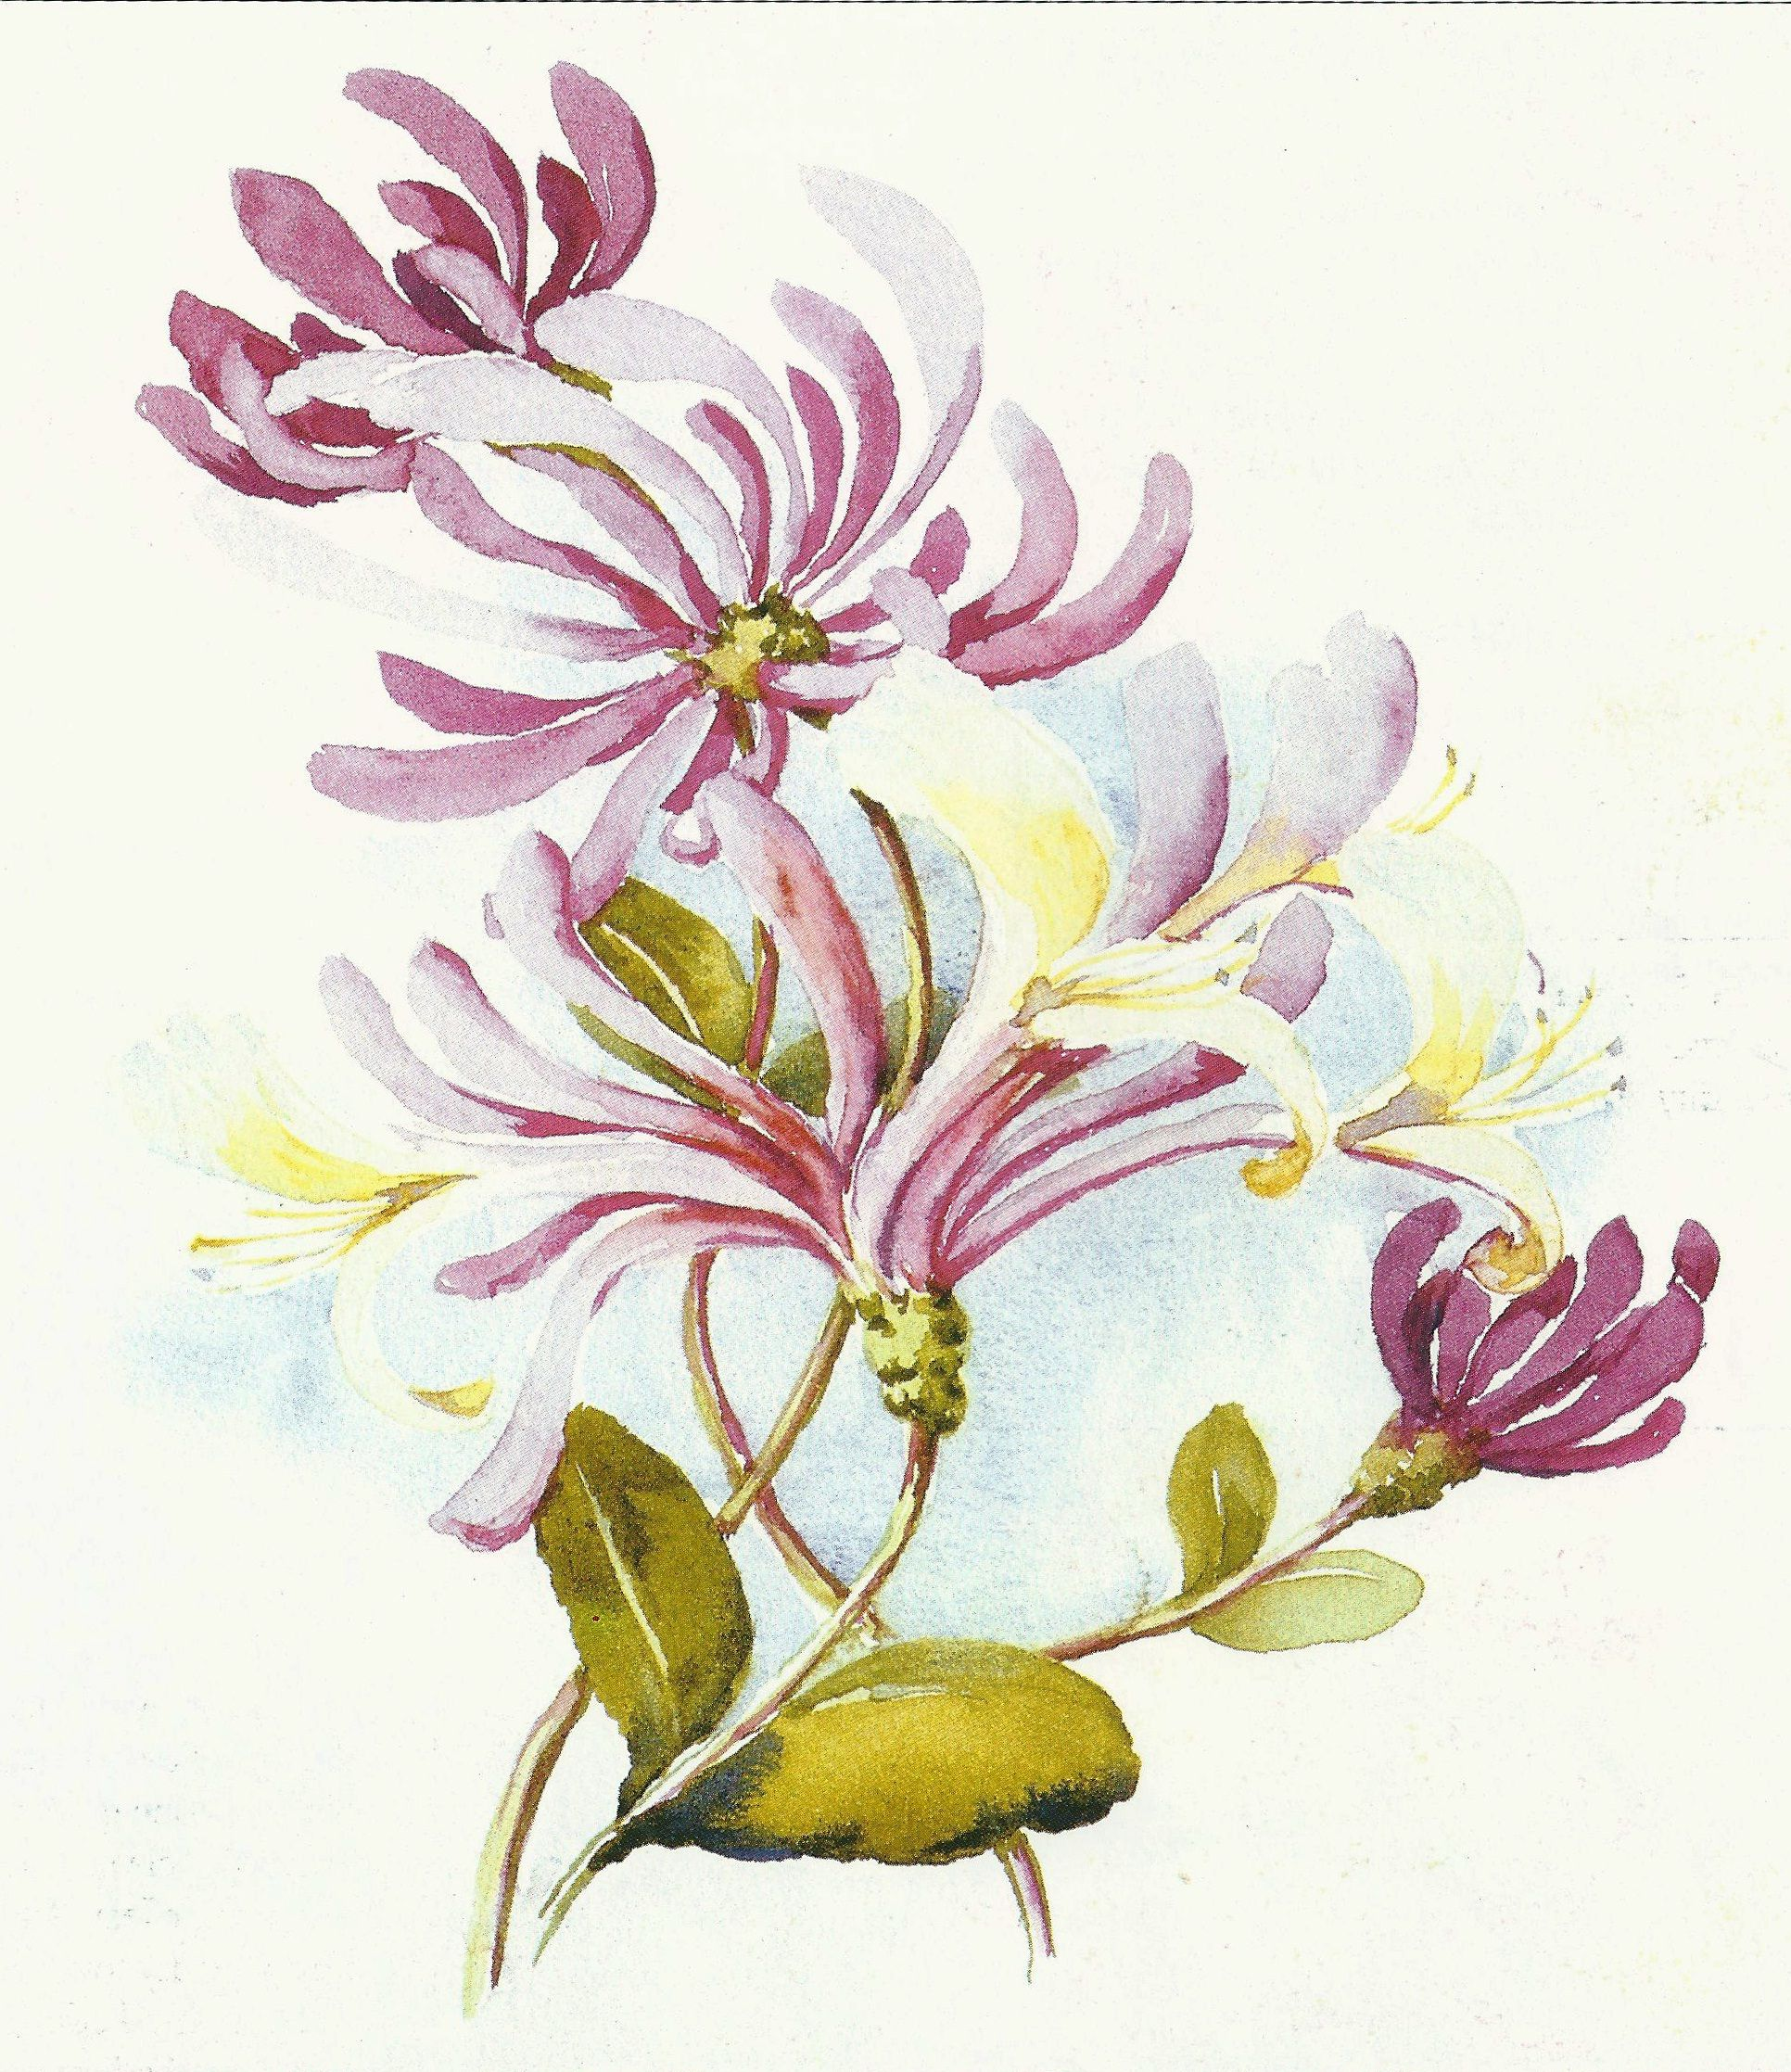 Honeysuckle Fun W Watercolor Pinterest Honeysuckle Tattoo